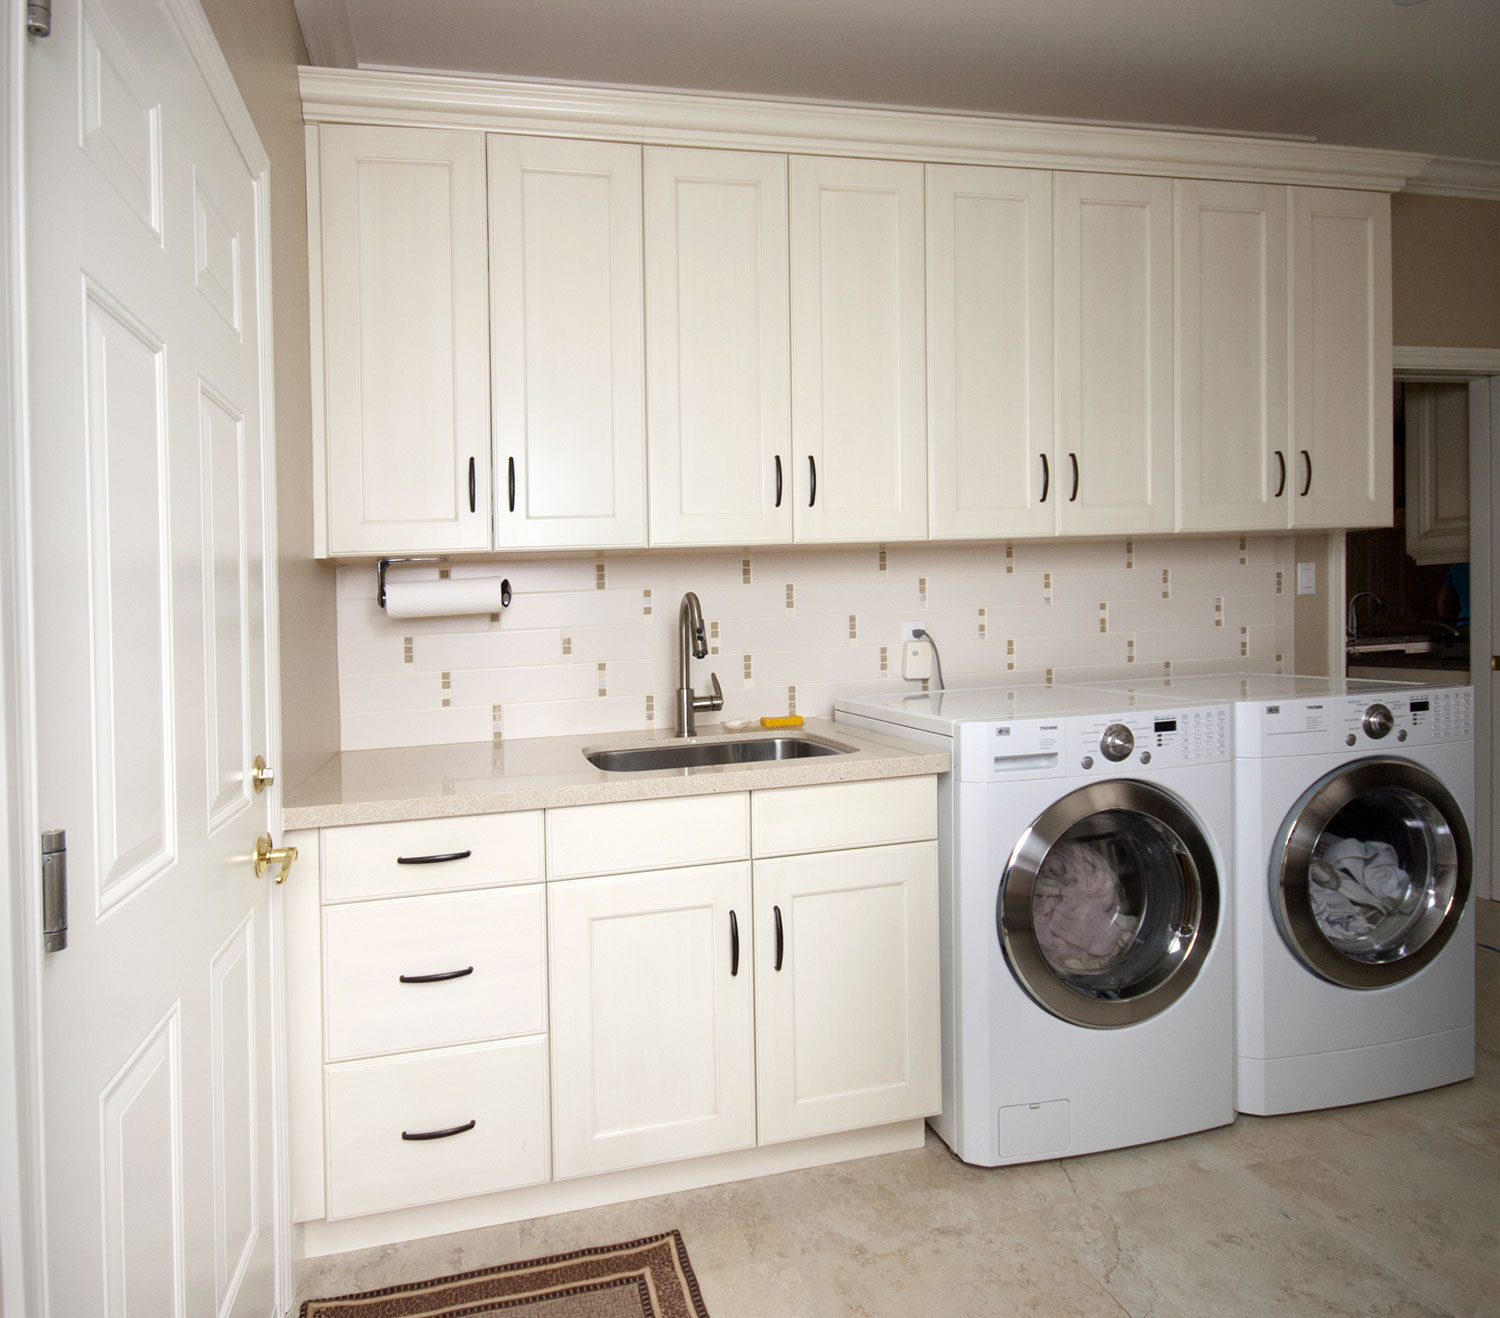 Laundry Room Renovation with cream colored cabinets and white appliances